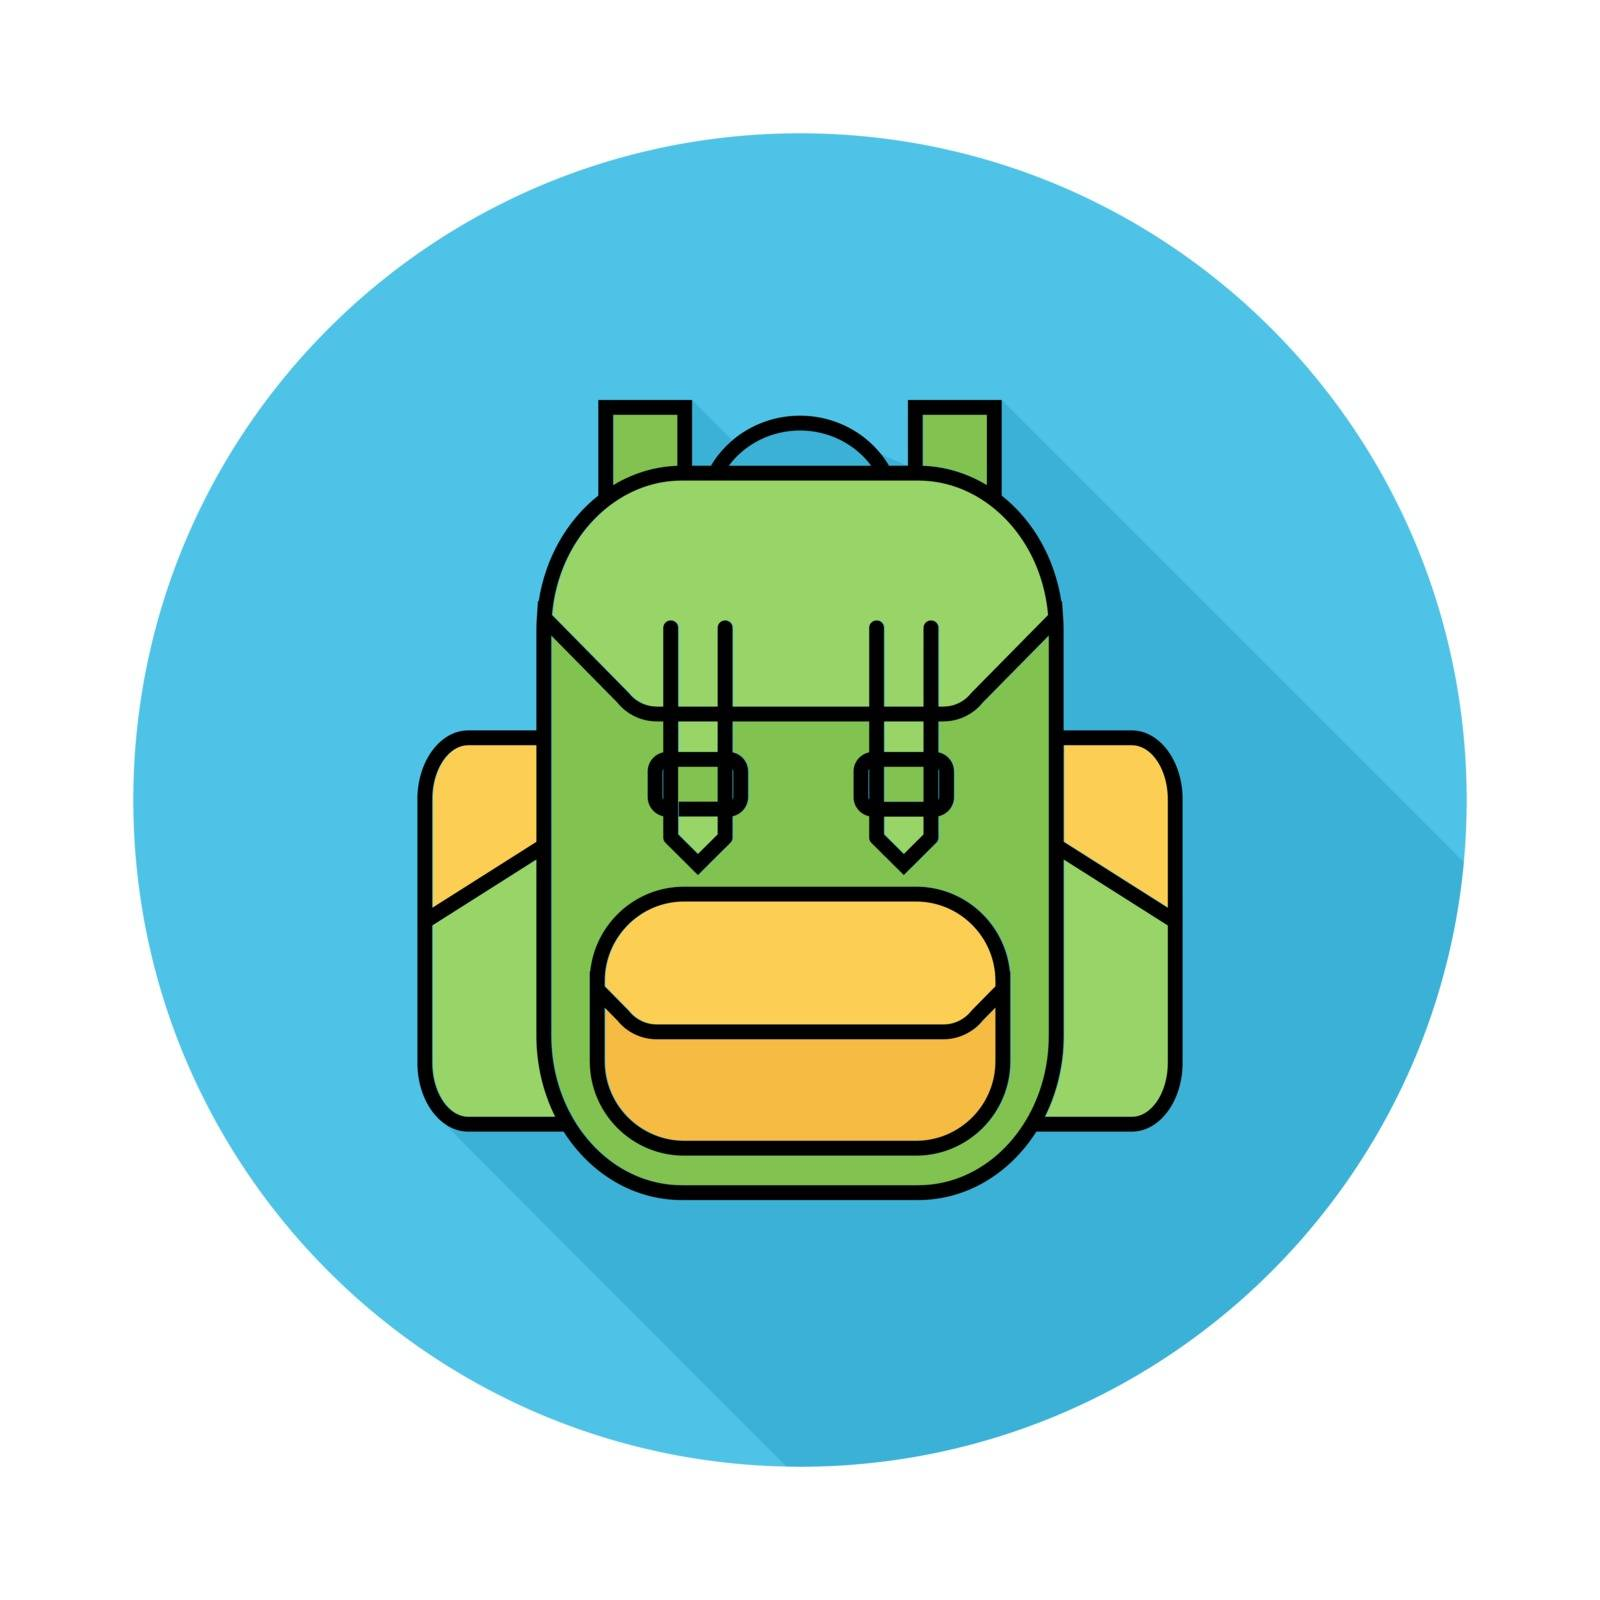 Rucksack. Single flat color icon on the circle. Vector illustration.